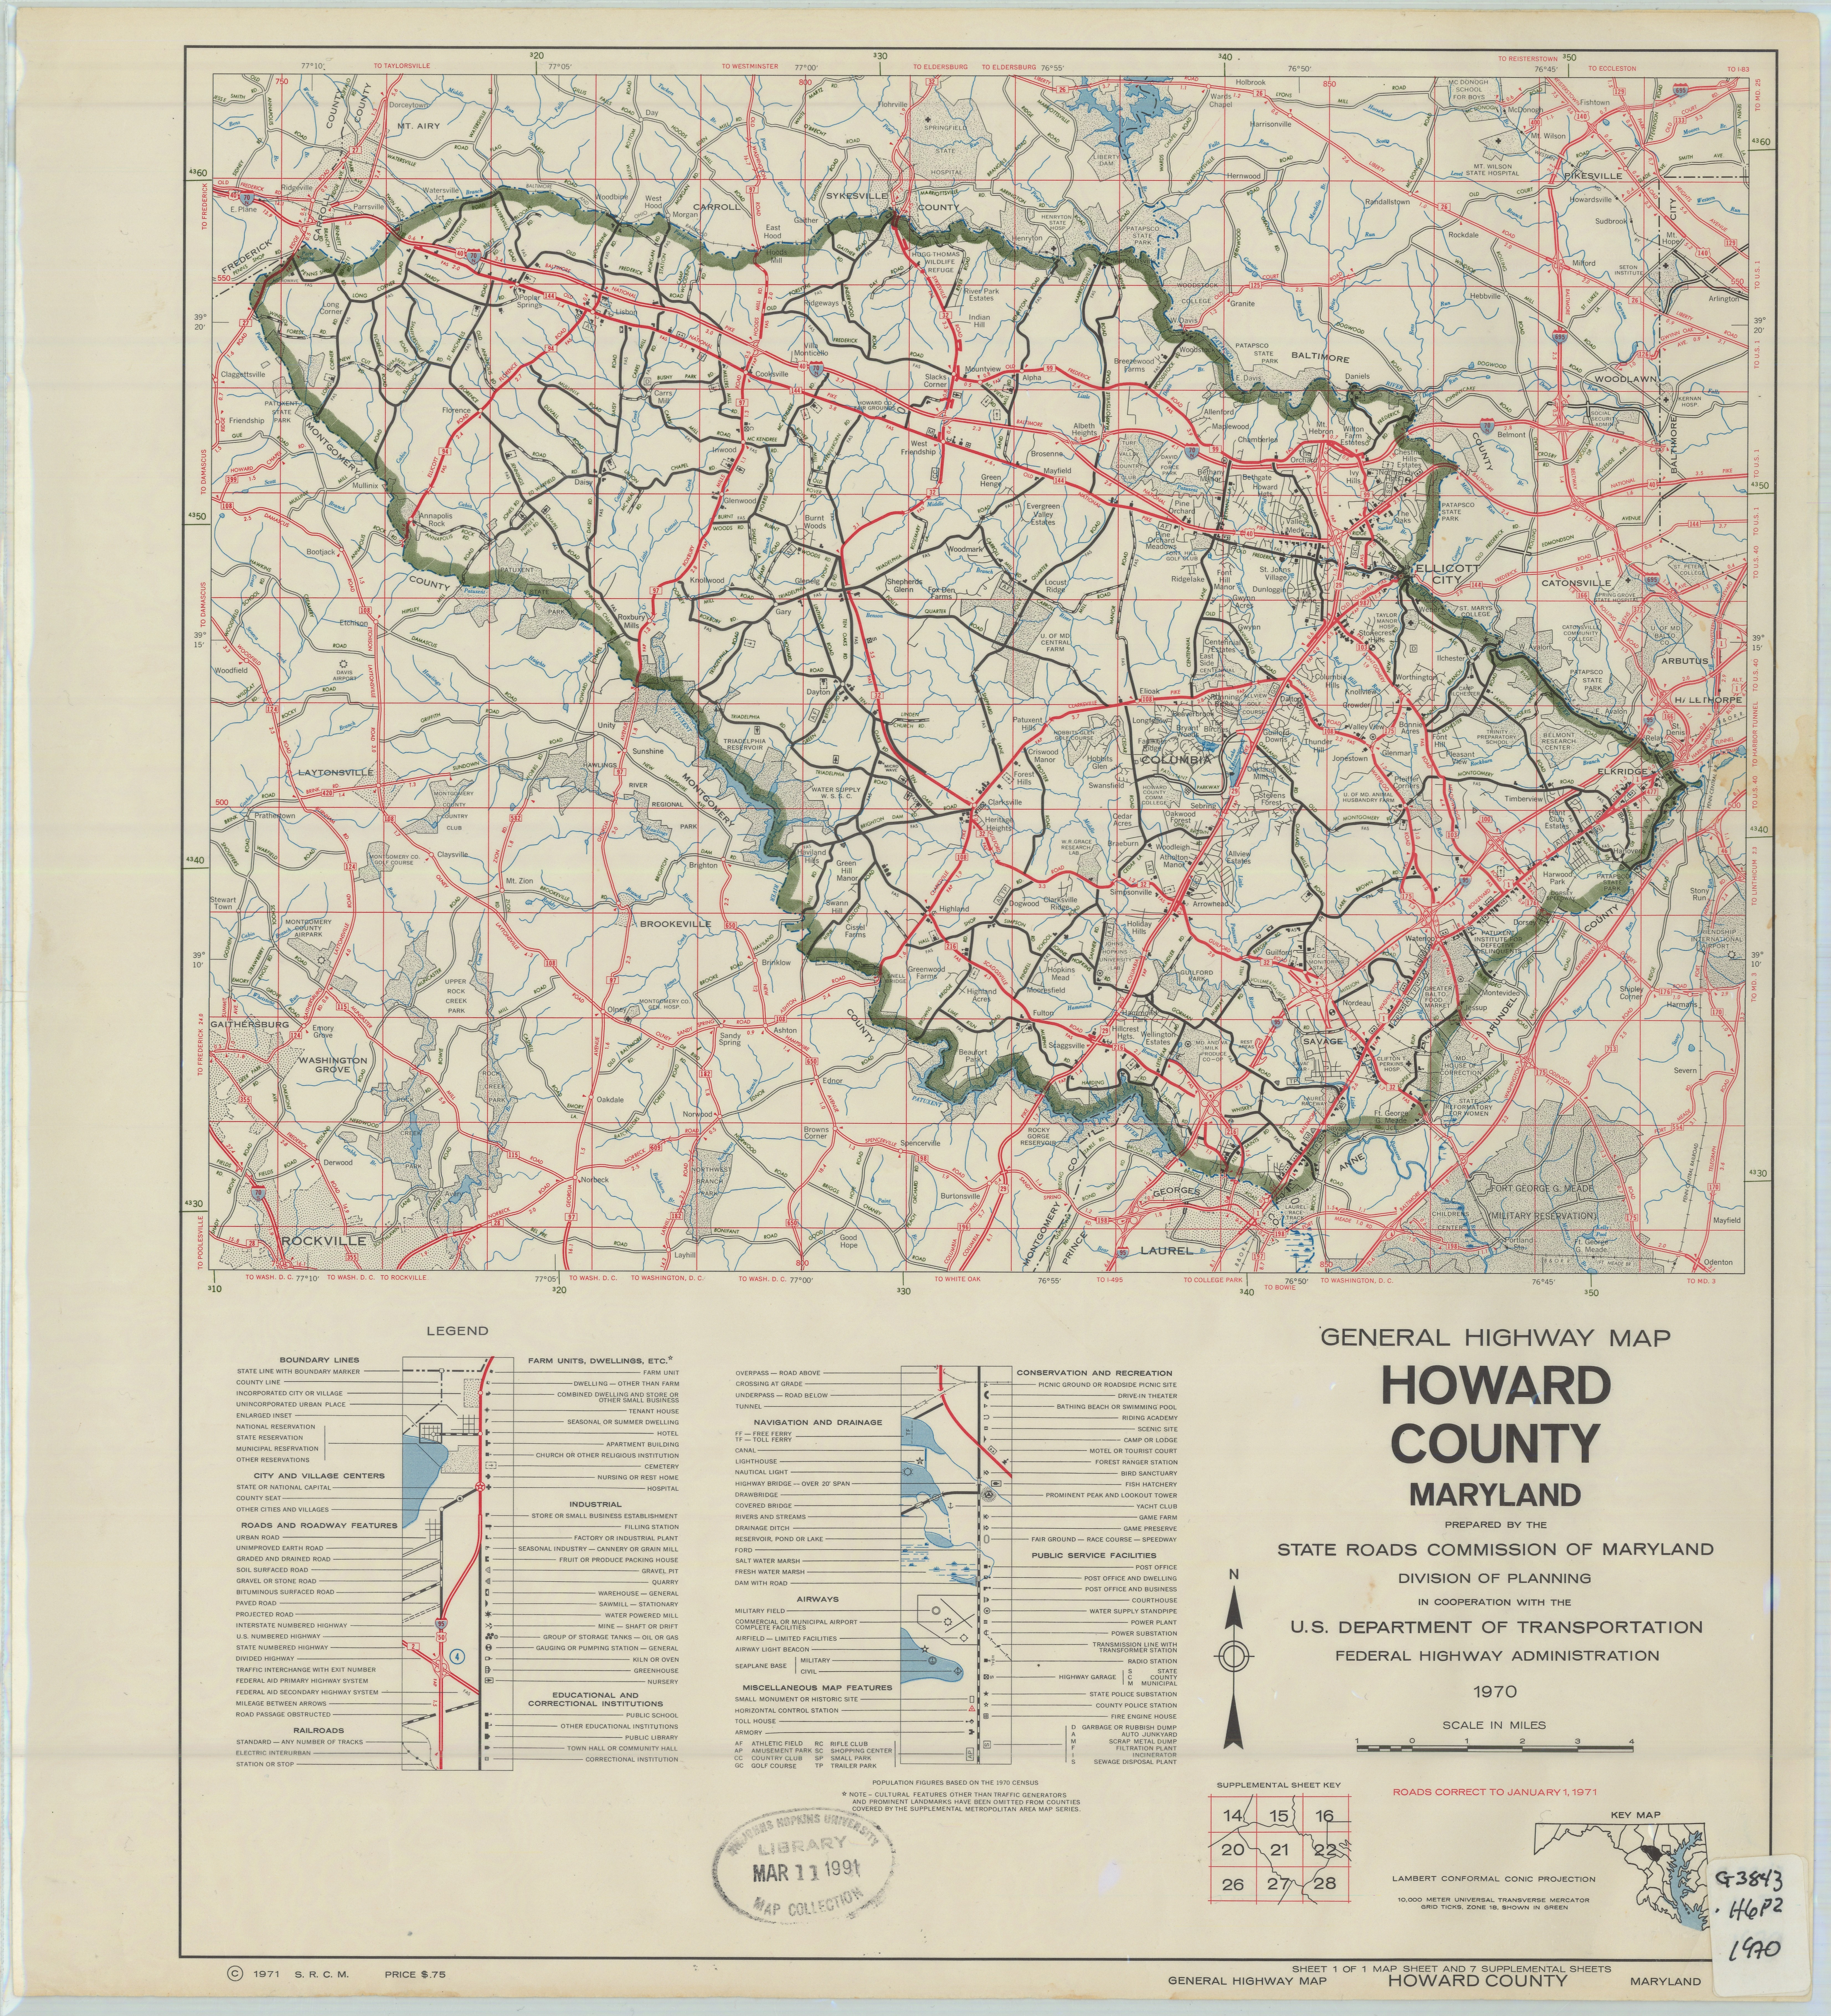 General Highway Map Howard County Maryland - Maryland road map